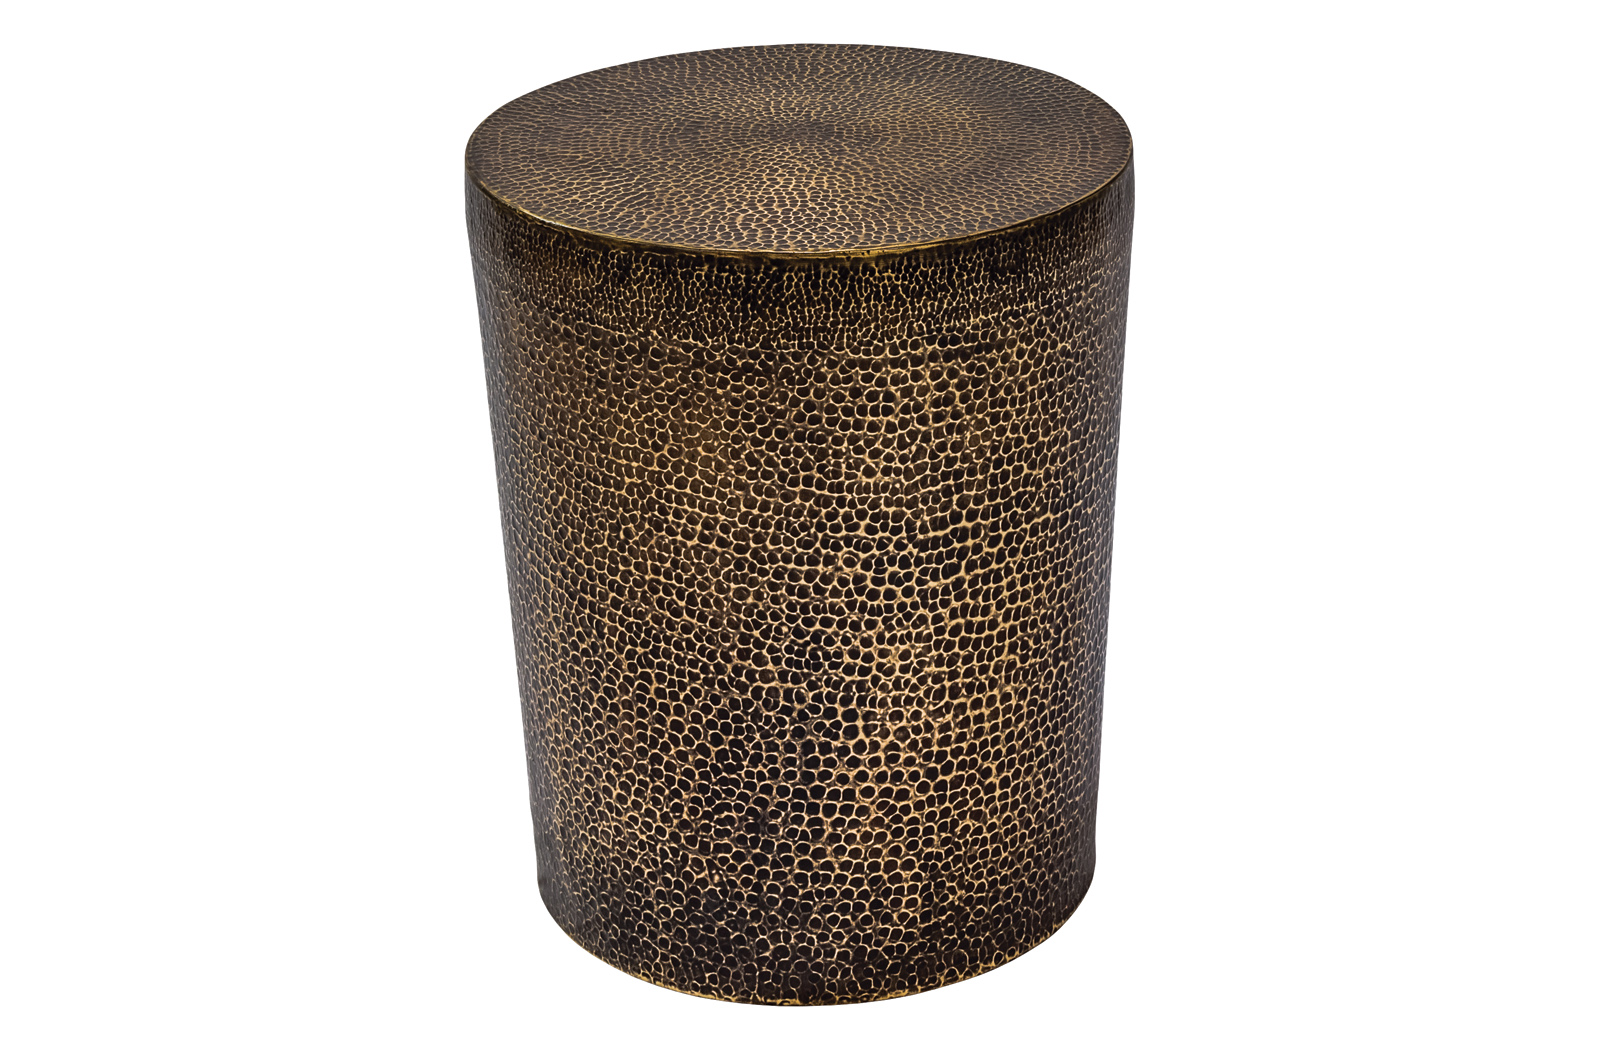 ingot ore accent table stool web leick laurent end ashley furniture counter height dining console with drawers ikea gold and glass coffee kohls slipcovers interior design ideas